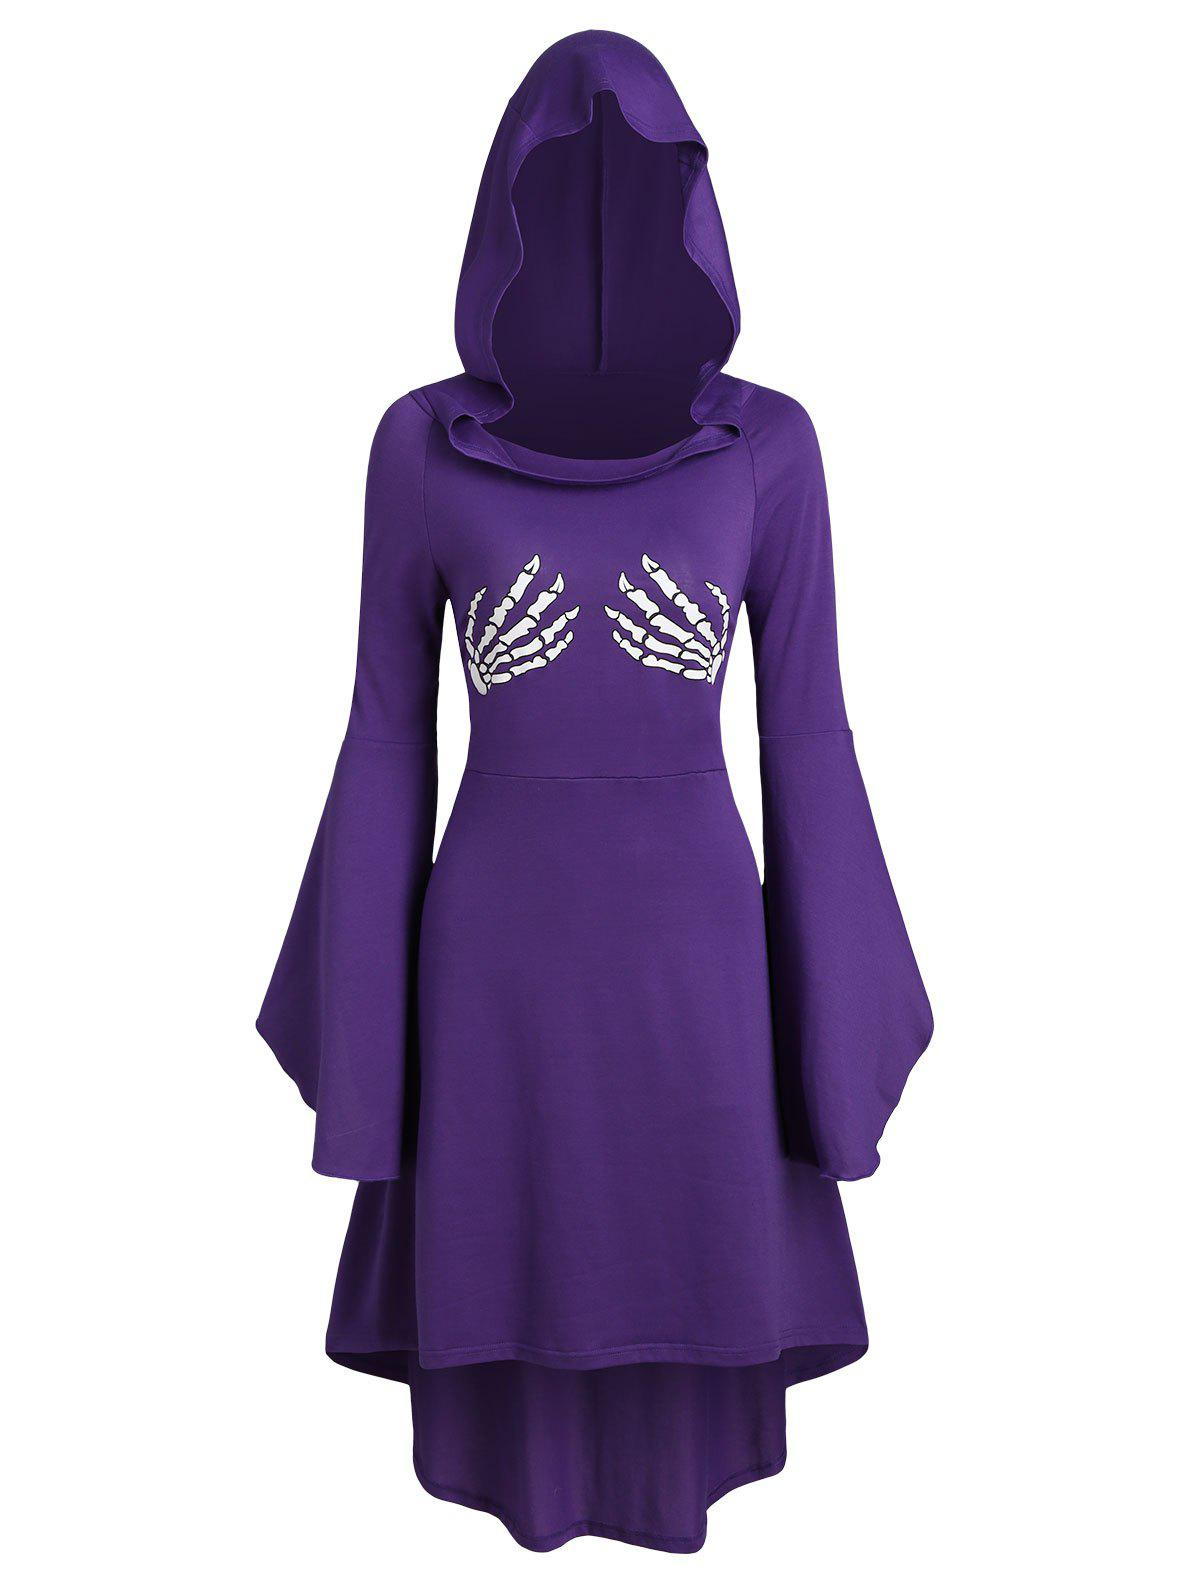 Skeleton Print Lace Up Halloween Hooded Dress - PURPLE XL